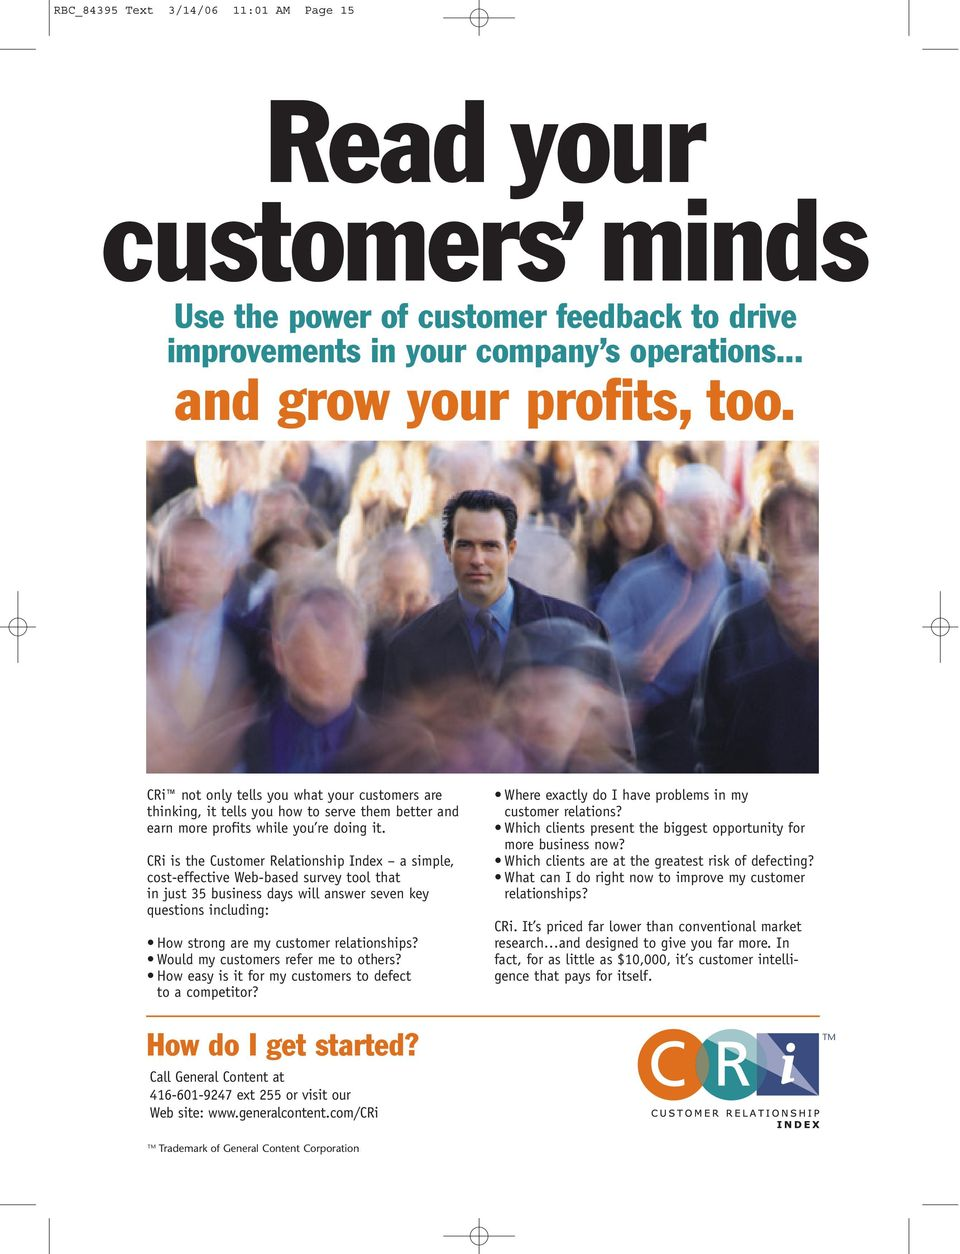 CRi is the Customer Relationship Index a simple, cost-effective Web-based survey tool that in just 35 business days will answer seven key questions including: How strong are my customer relationships?